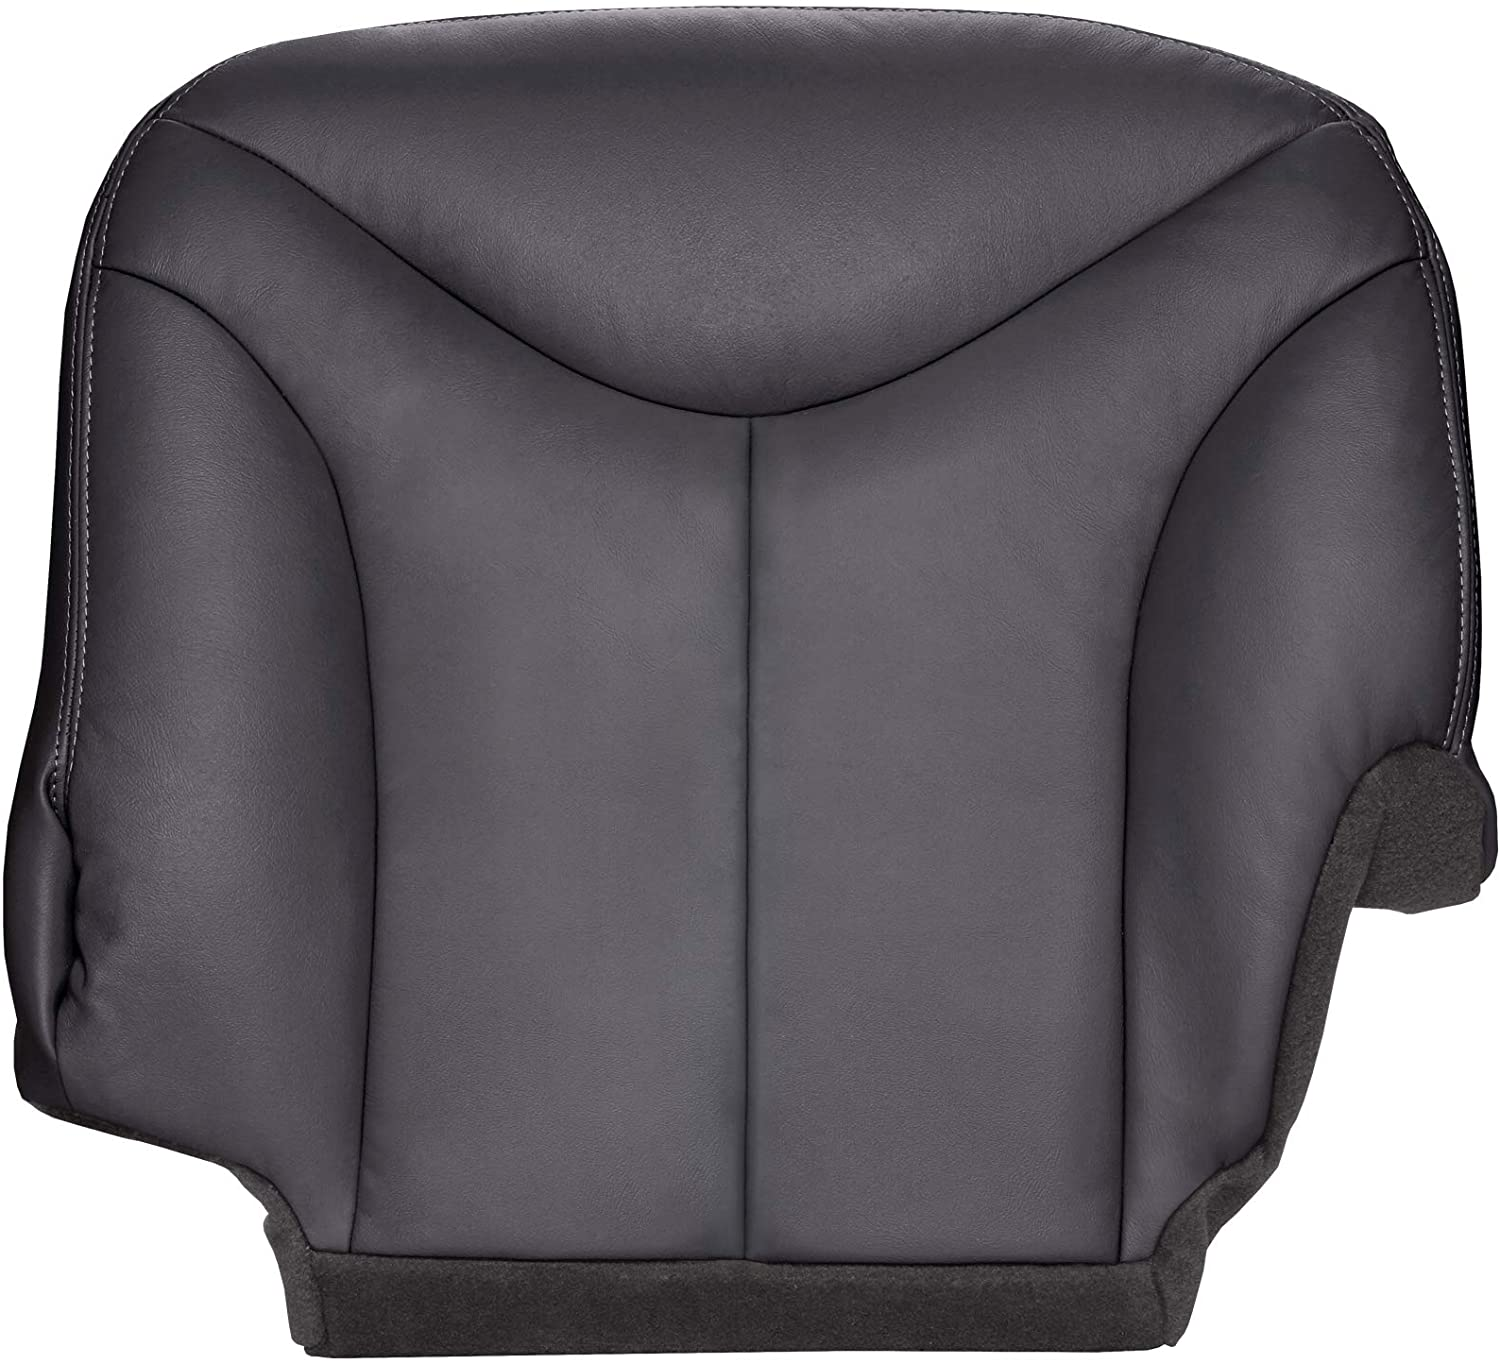 The Seat Shop Driver Side 40 Portion (Split Bench) Bottom Replacement Seat Cover - Graphite (Dark Gray) Leather (Compatible with 1999 GMC Sierra 1500, 2500, 3500)